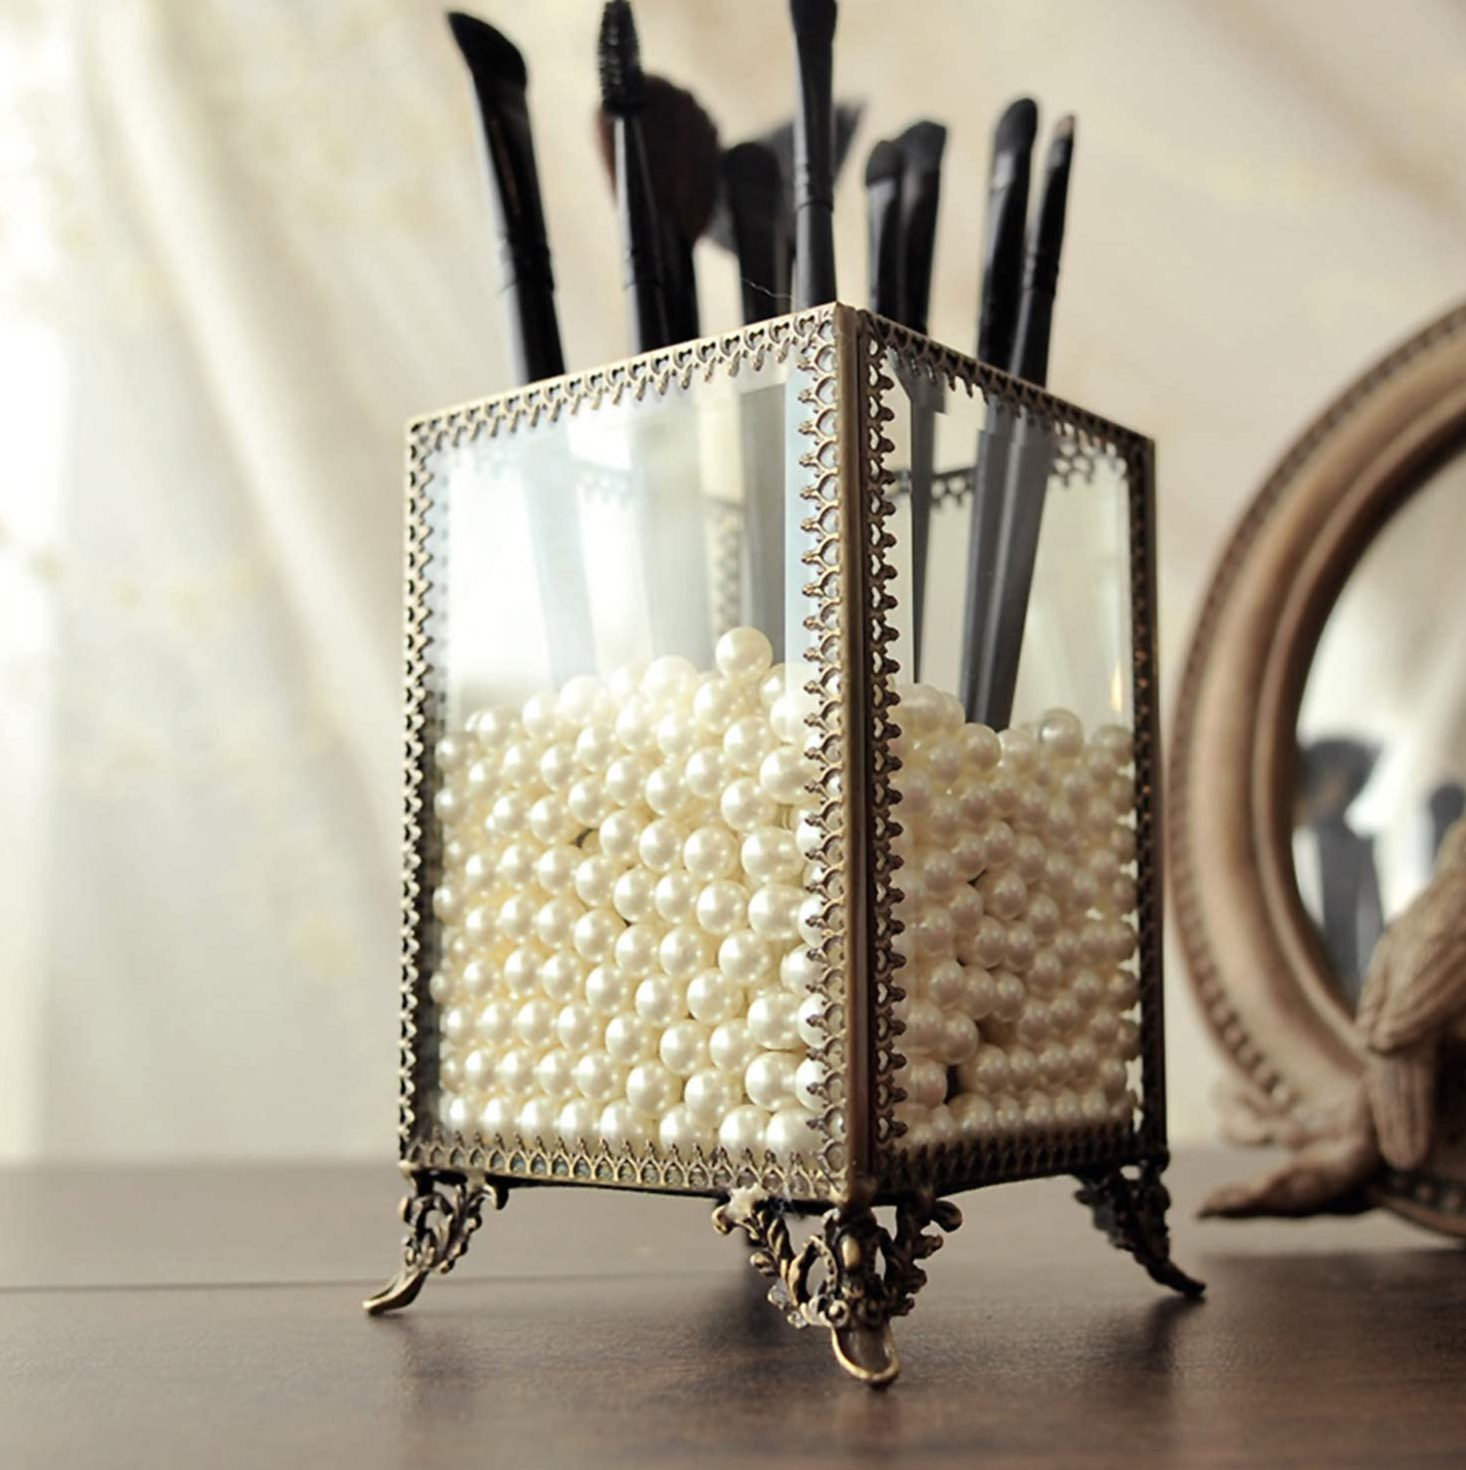 A Makeup Brush Organizer